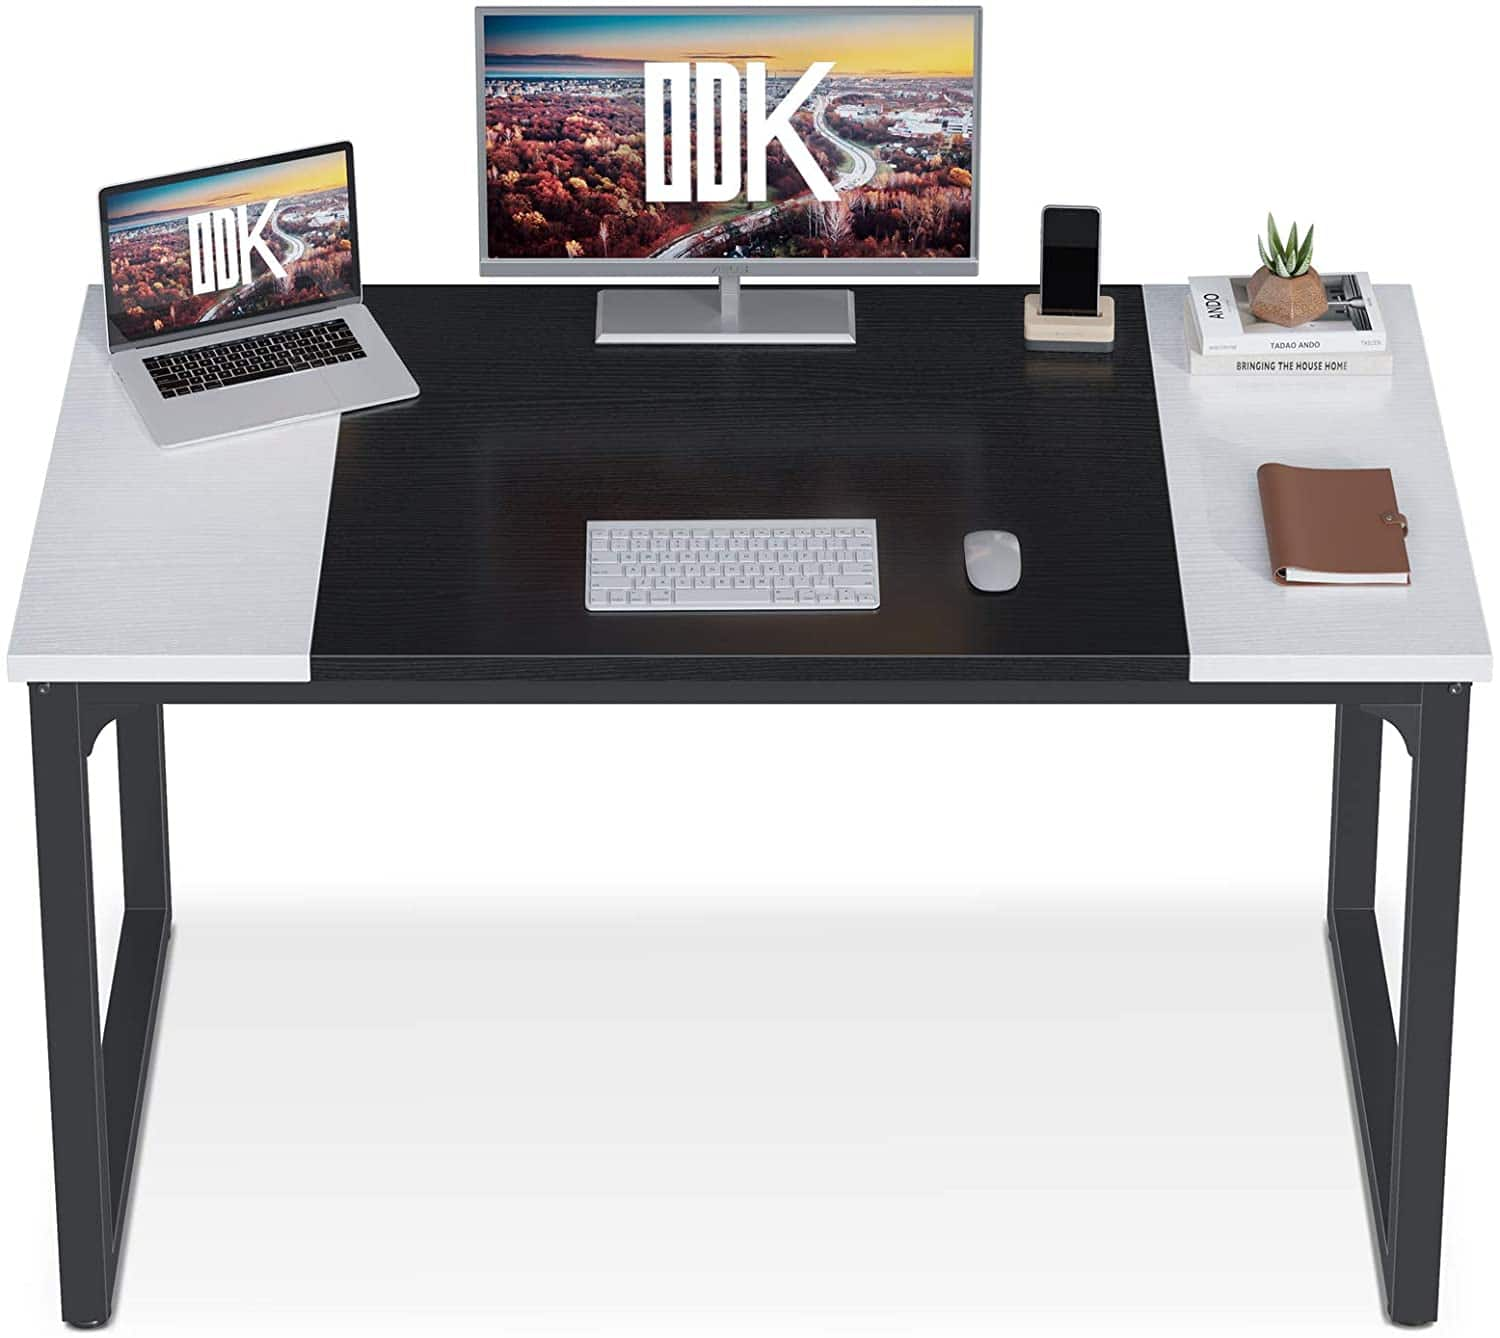 """39""""/47""""/55"""" ODK Computer Desk w/ Splice Board, 39"""" for $27.86, 47"""" for $34.86, 55"""" for $44.86 + Free Shipping"""